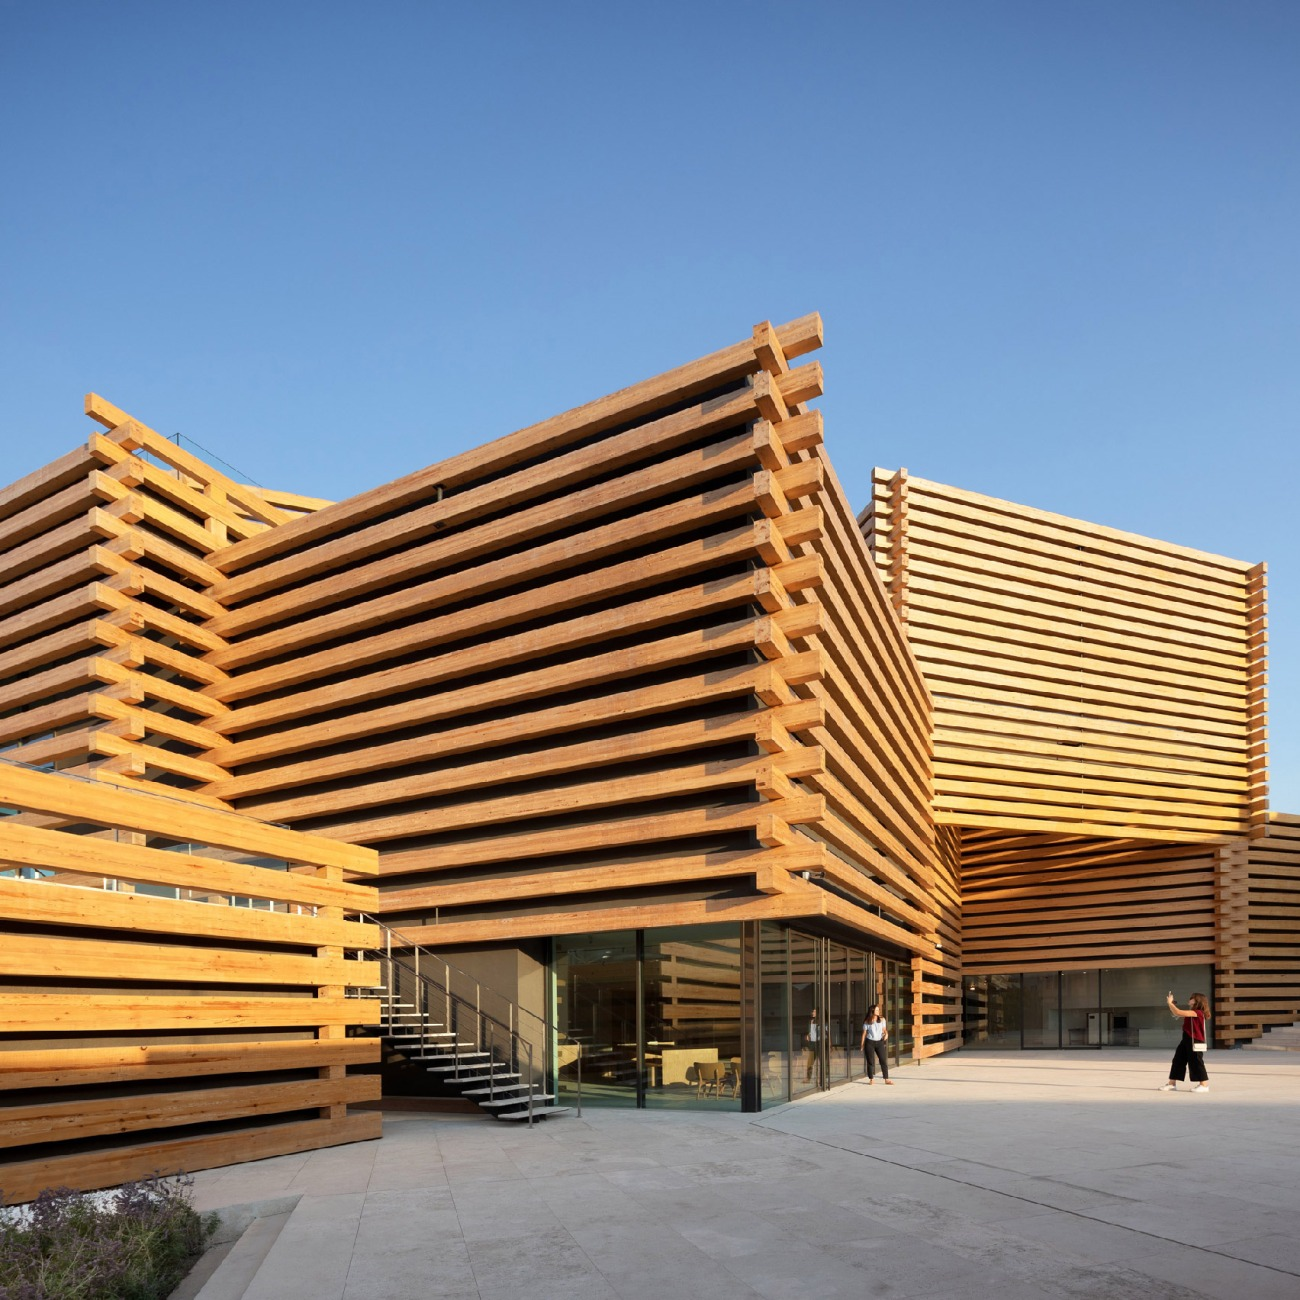 Odunpazari Modern Museum, Eskisehir, Turkey, by Kengo Kuma and Associates